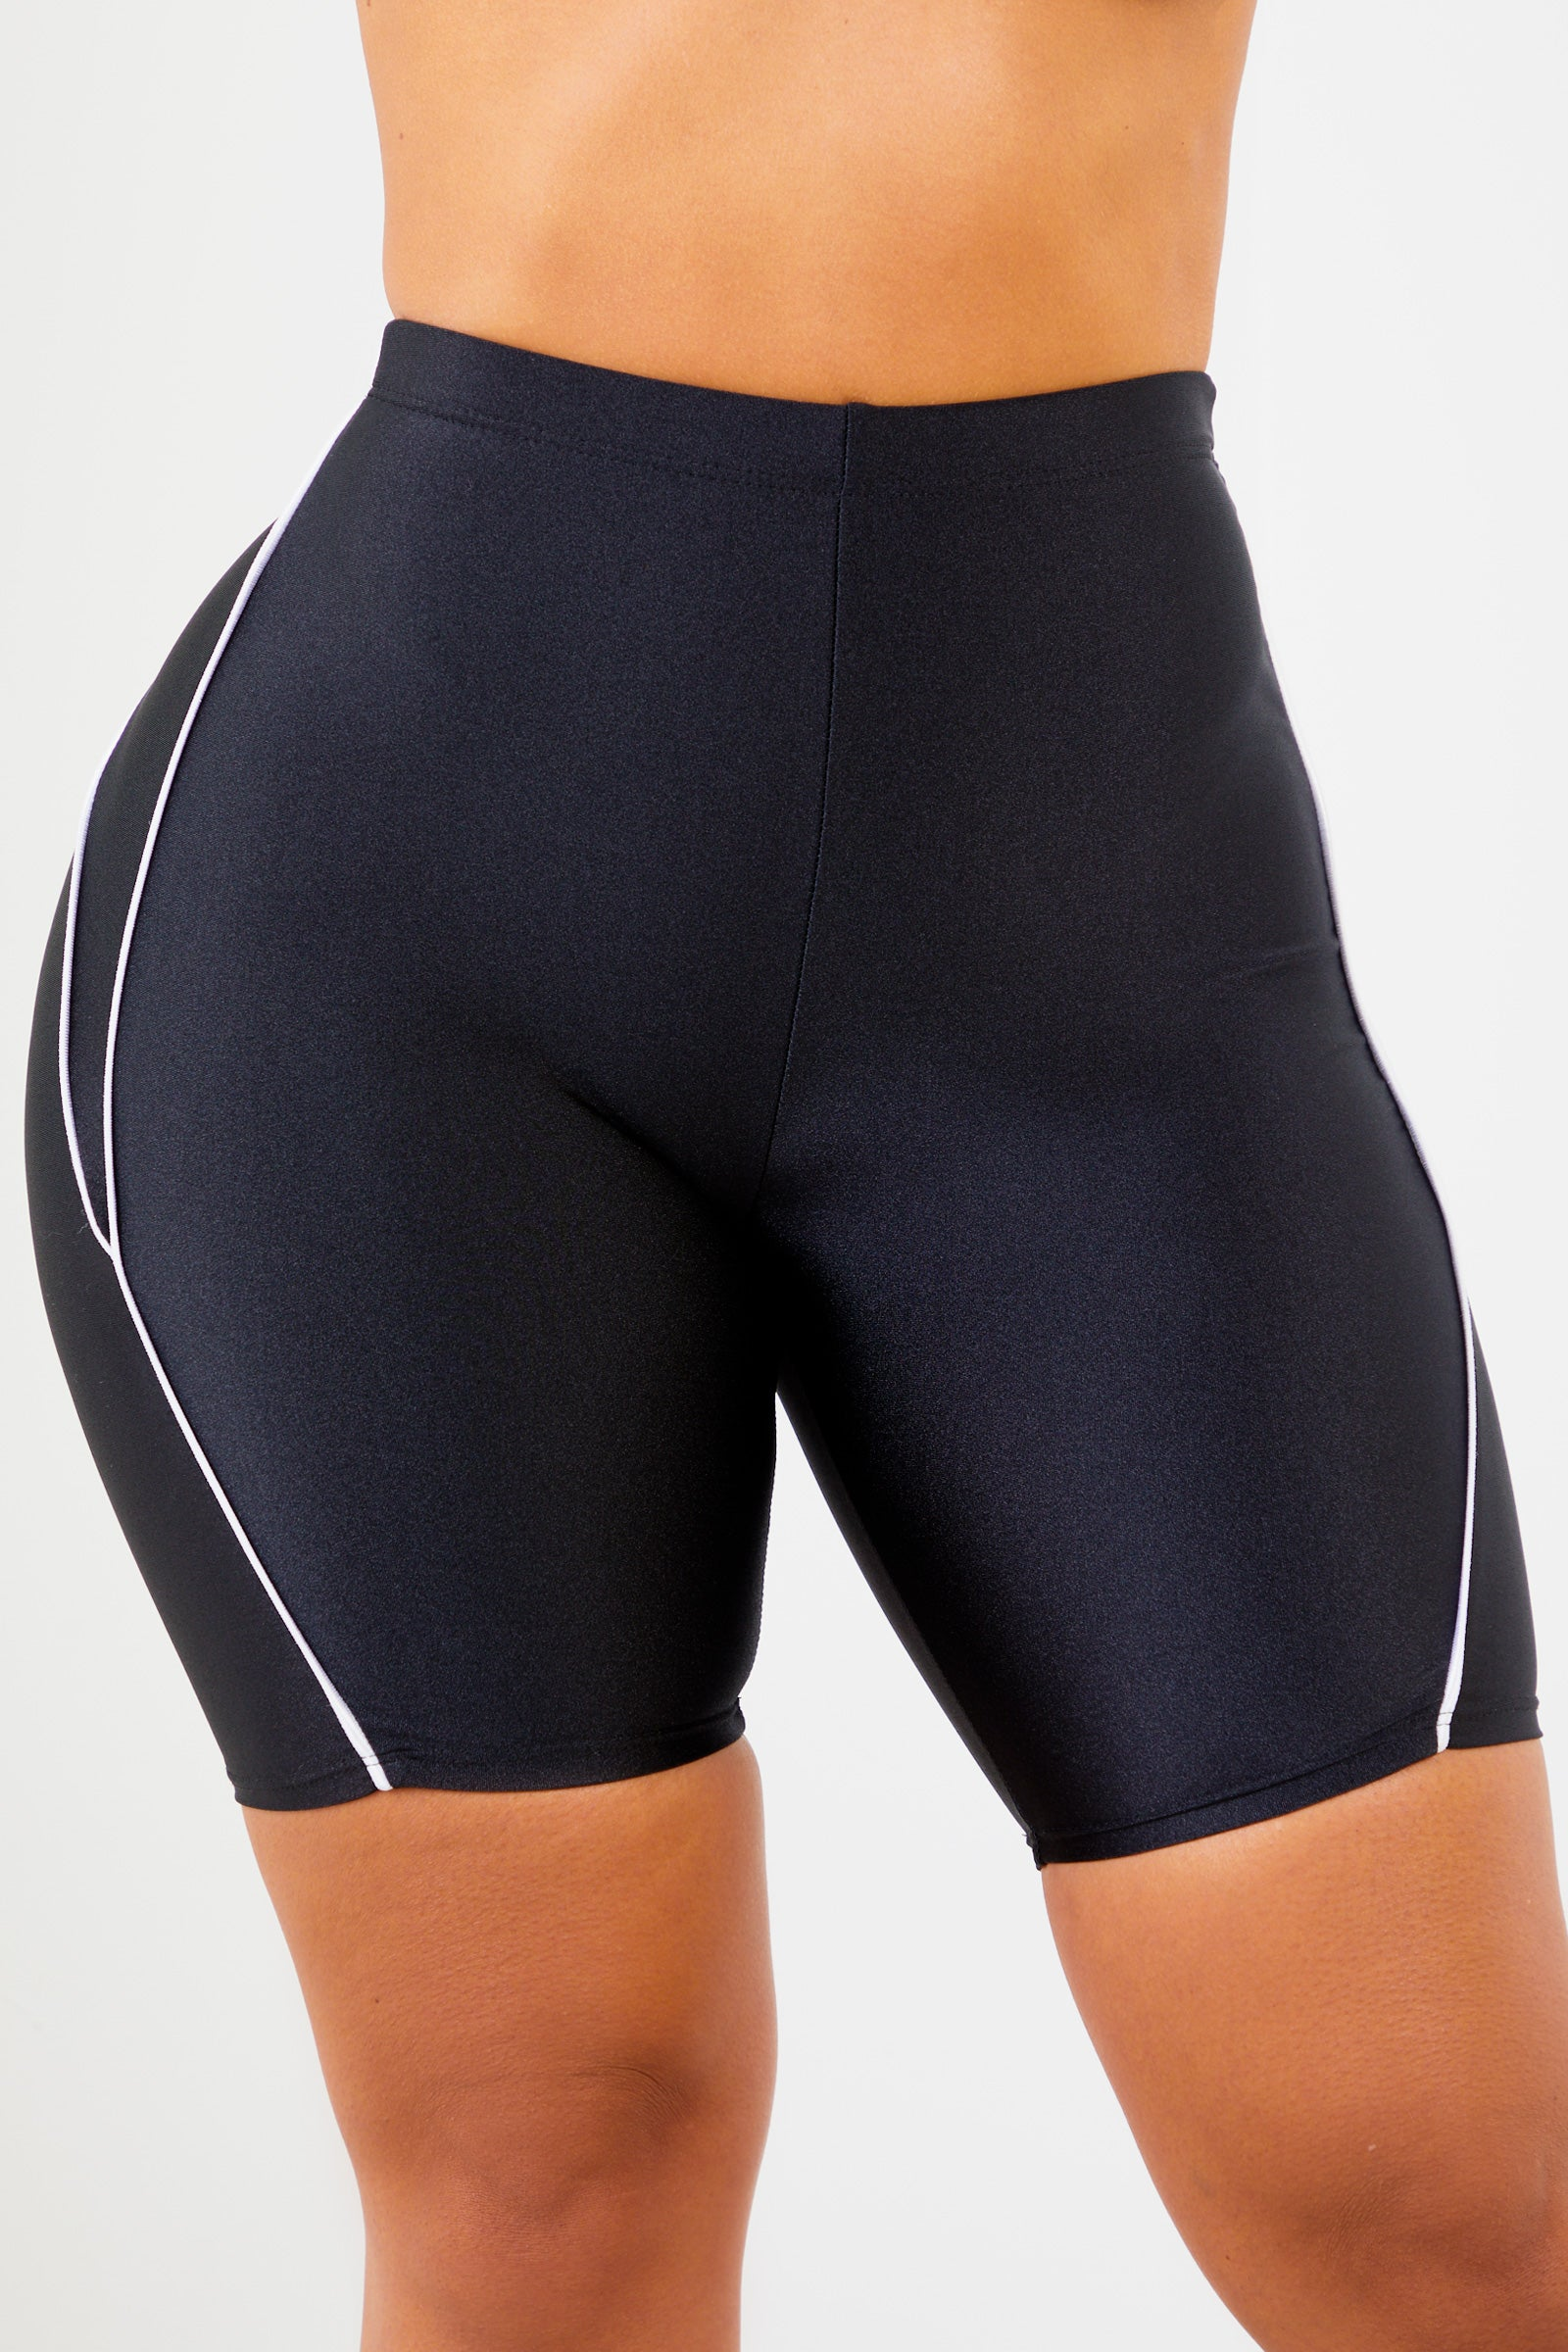 Sorella Black Athletic Piping Shorts